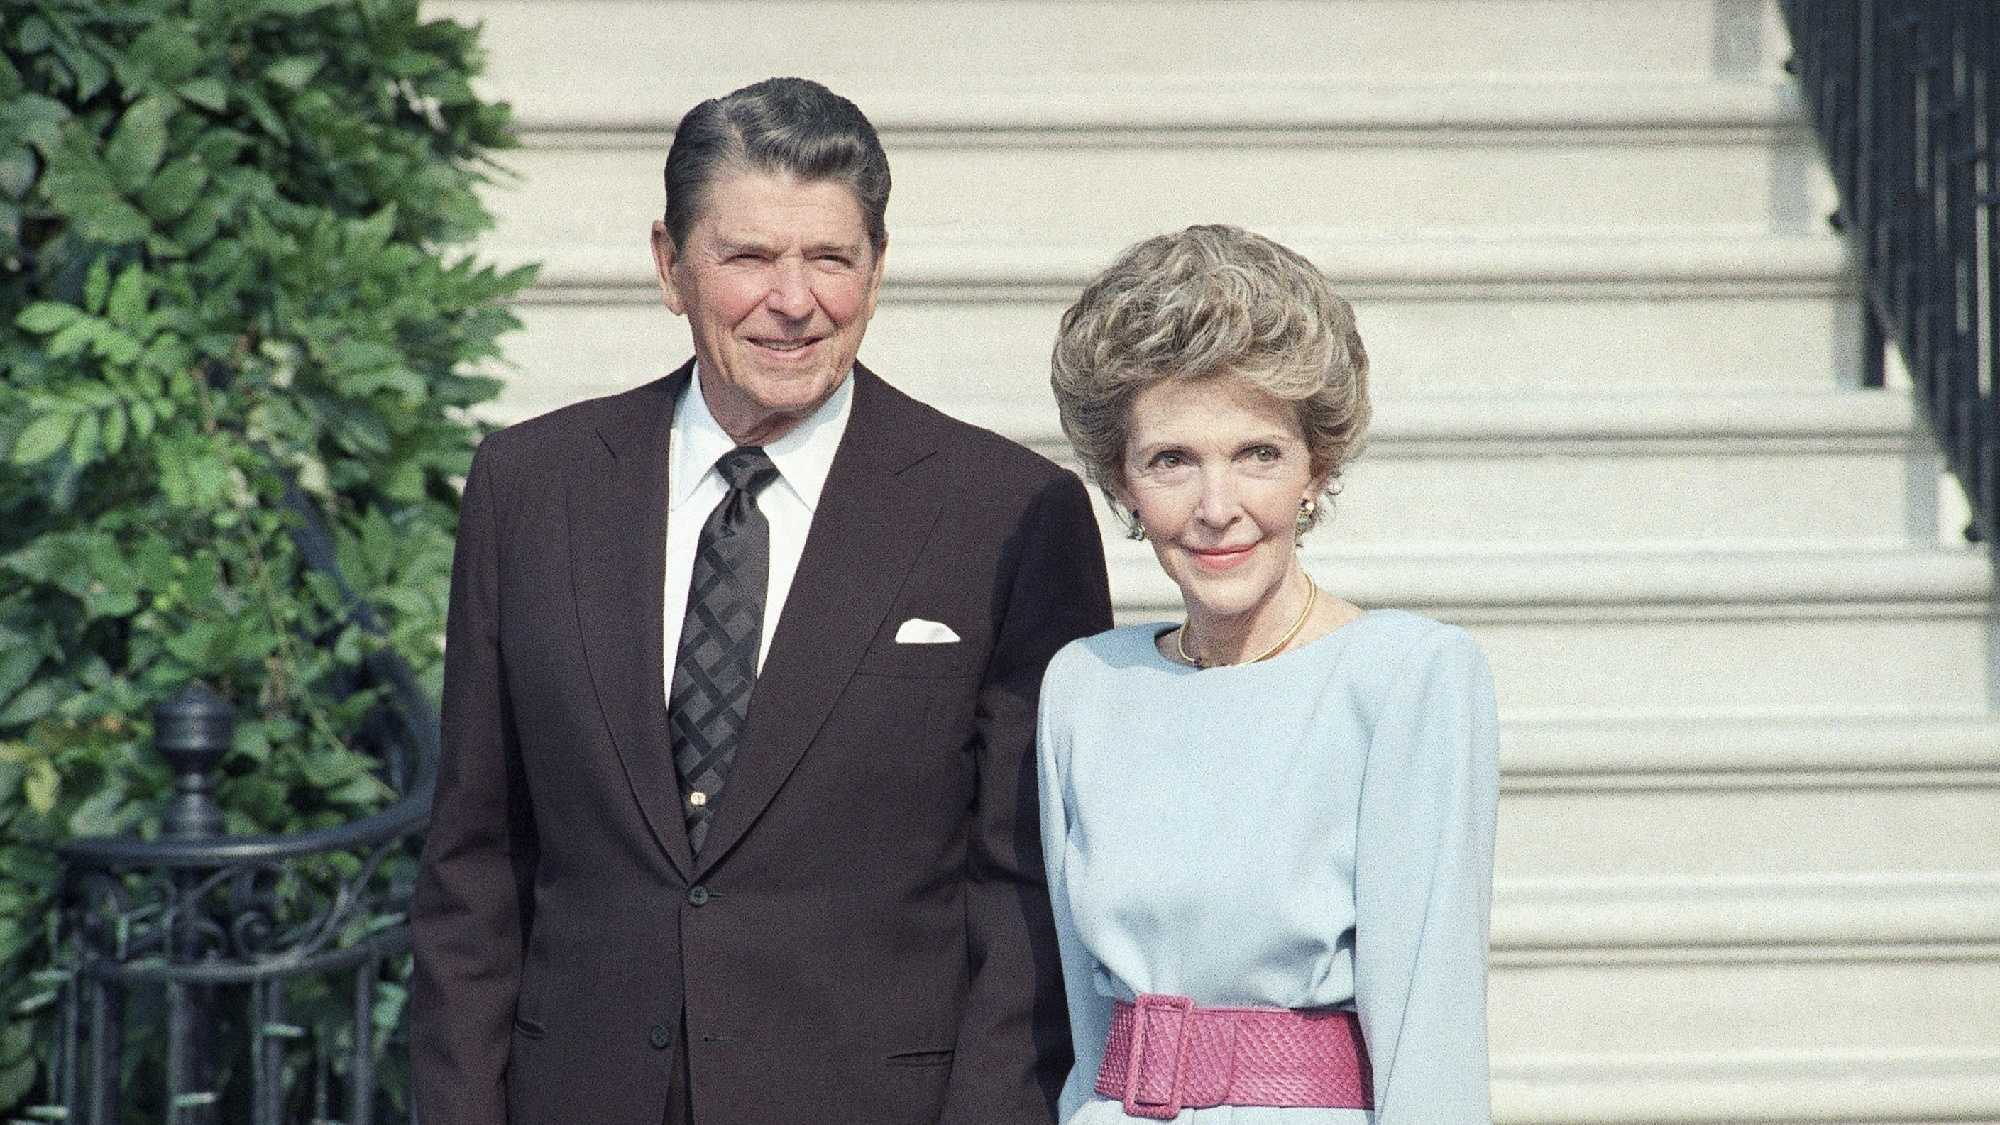 U.S. President Ronald Reagan and his wife Nancy Reagan in 1986 at the White House.